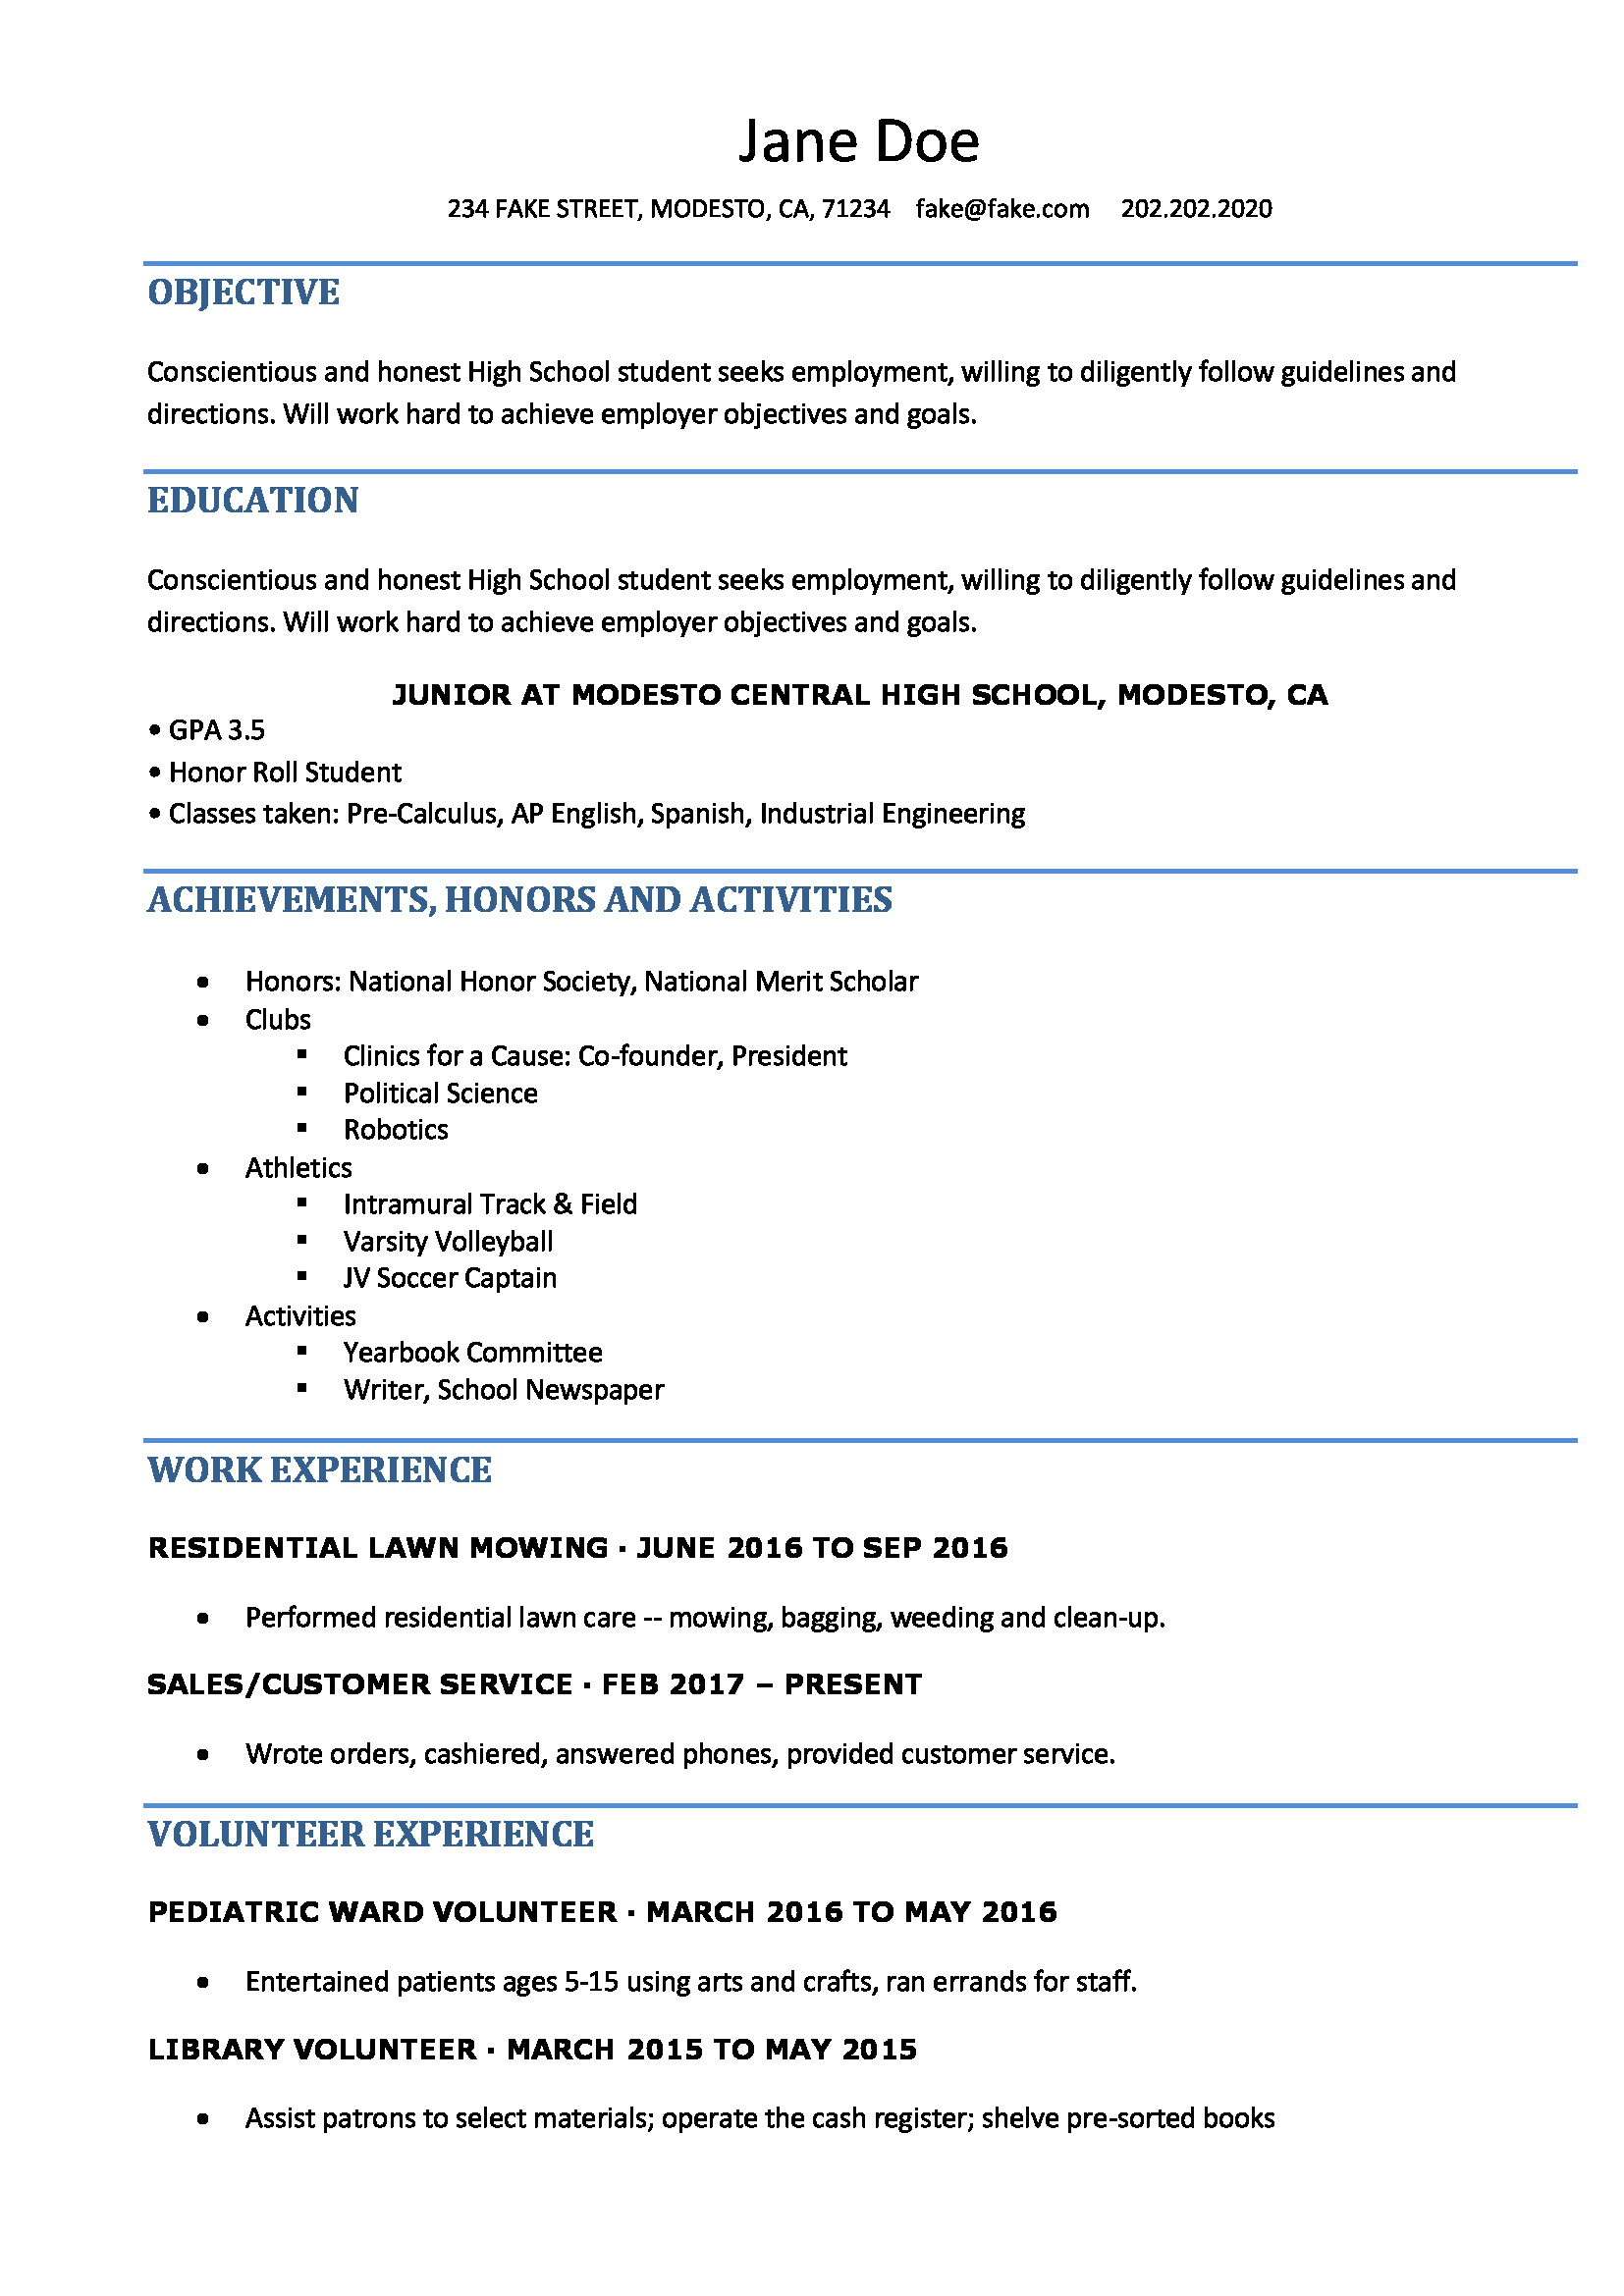 Resume Templates For High School Students Free